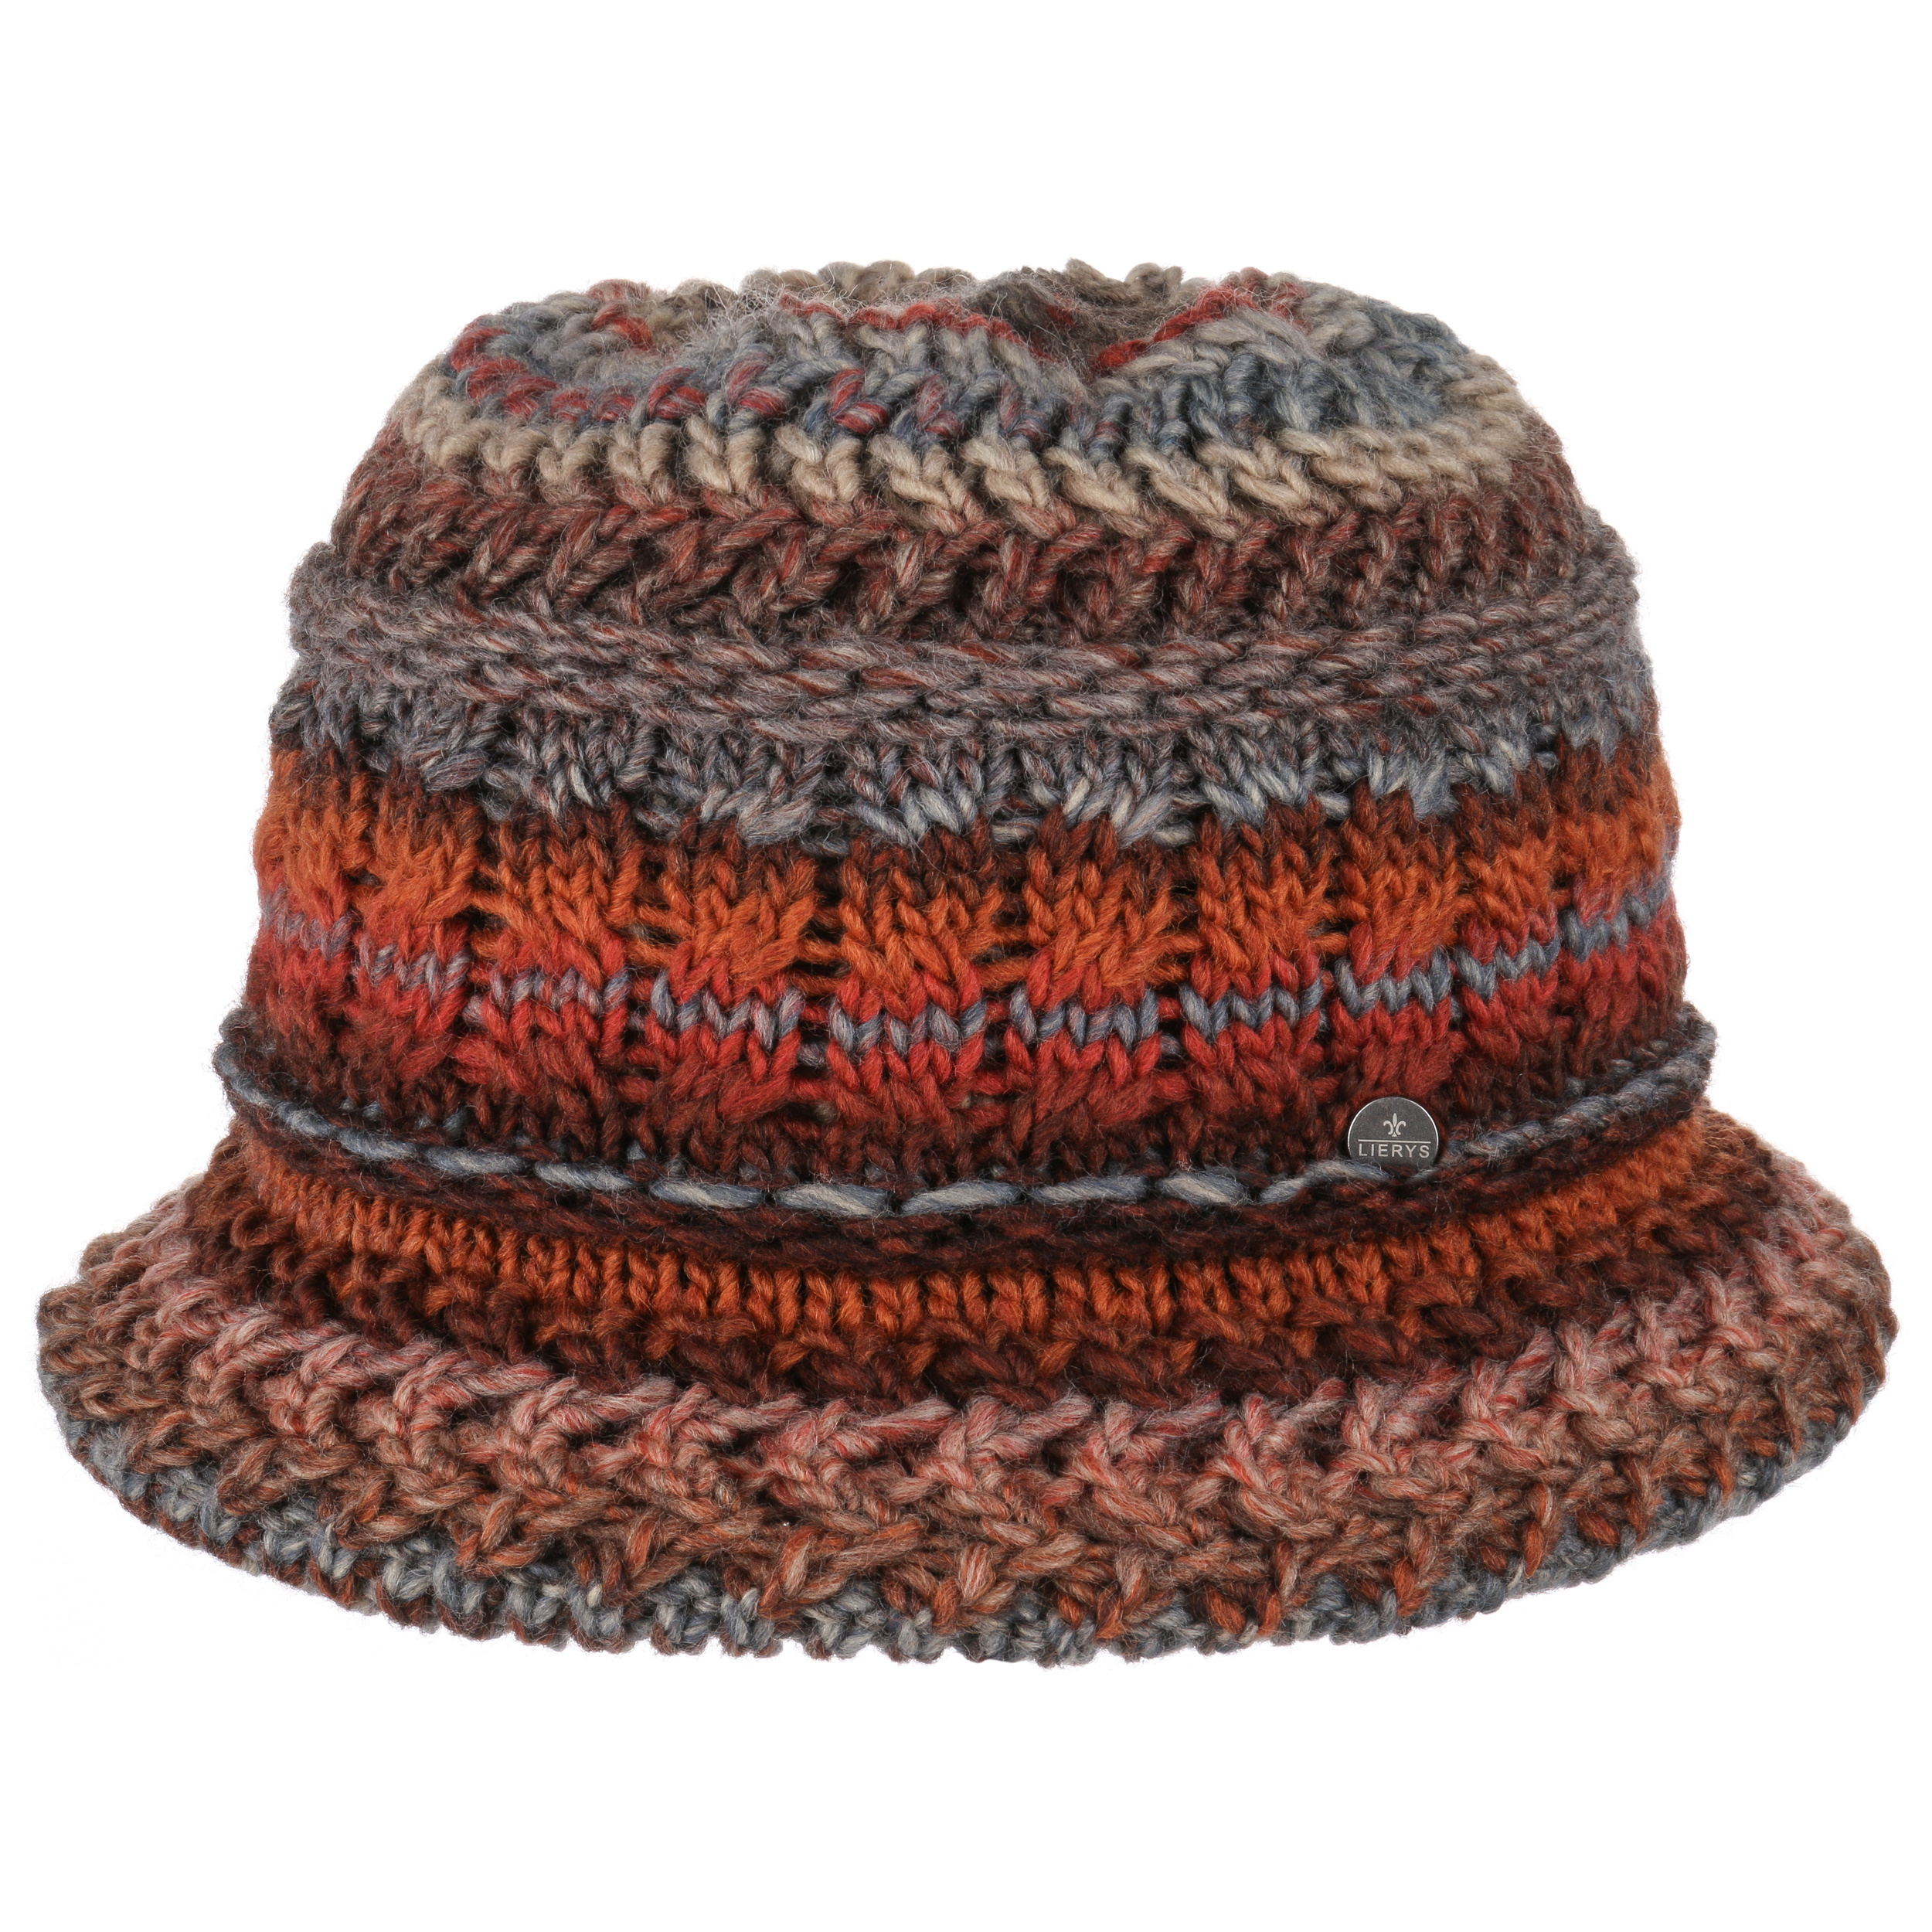 Amila Knit Hat with Velvet Band by Lierys Cloth hats Lierys BFdbMi